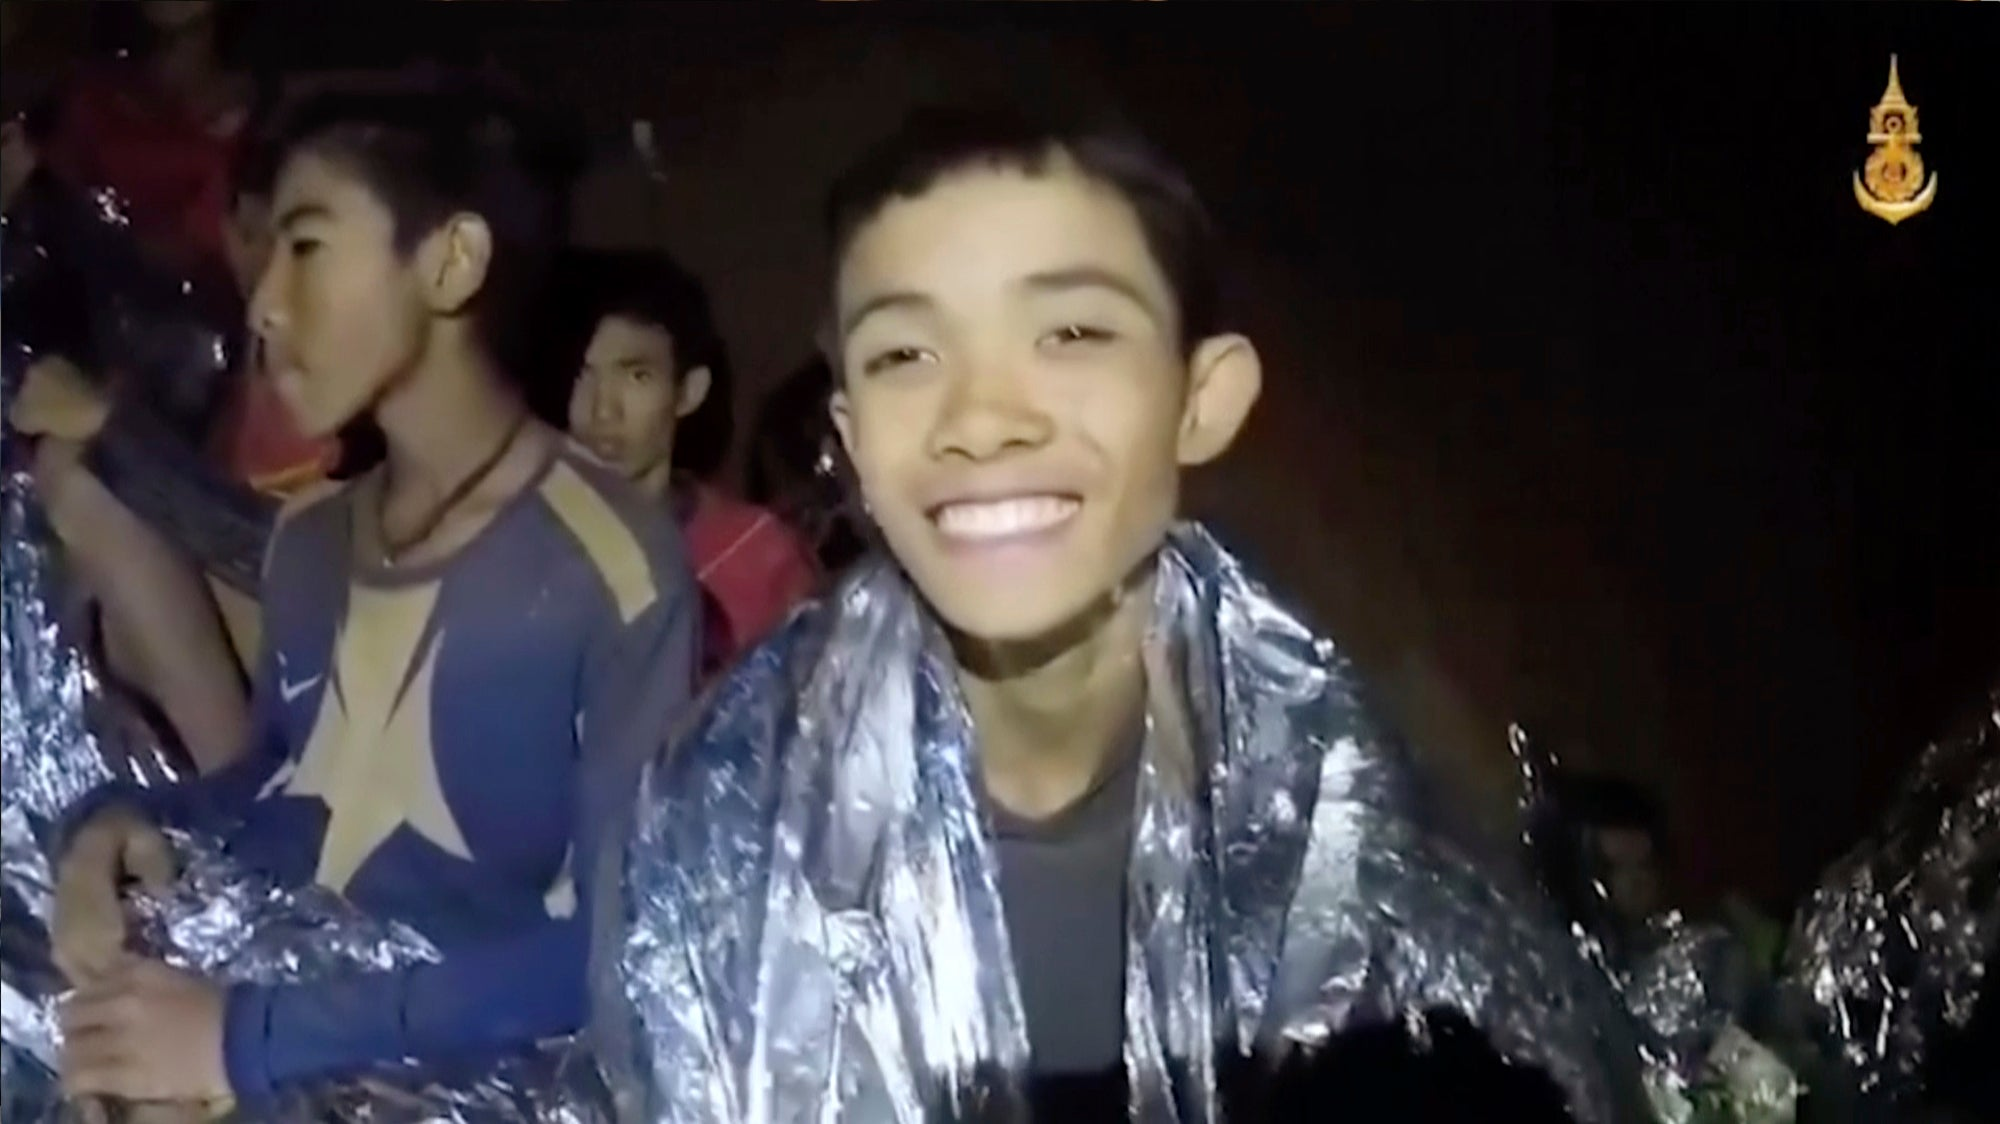 Threat Of Heavy Rains Could Force Emergency Evacuation Of Boys Trapped In Thai Cave